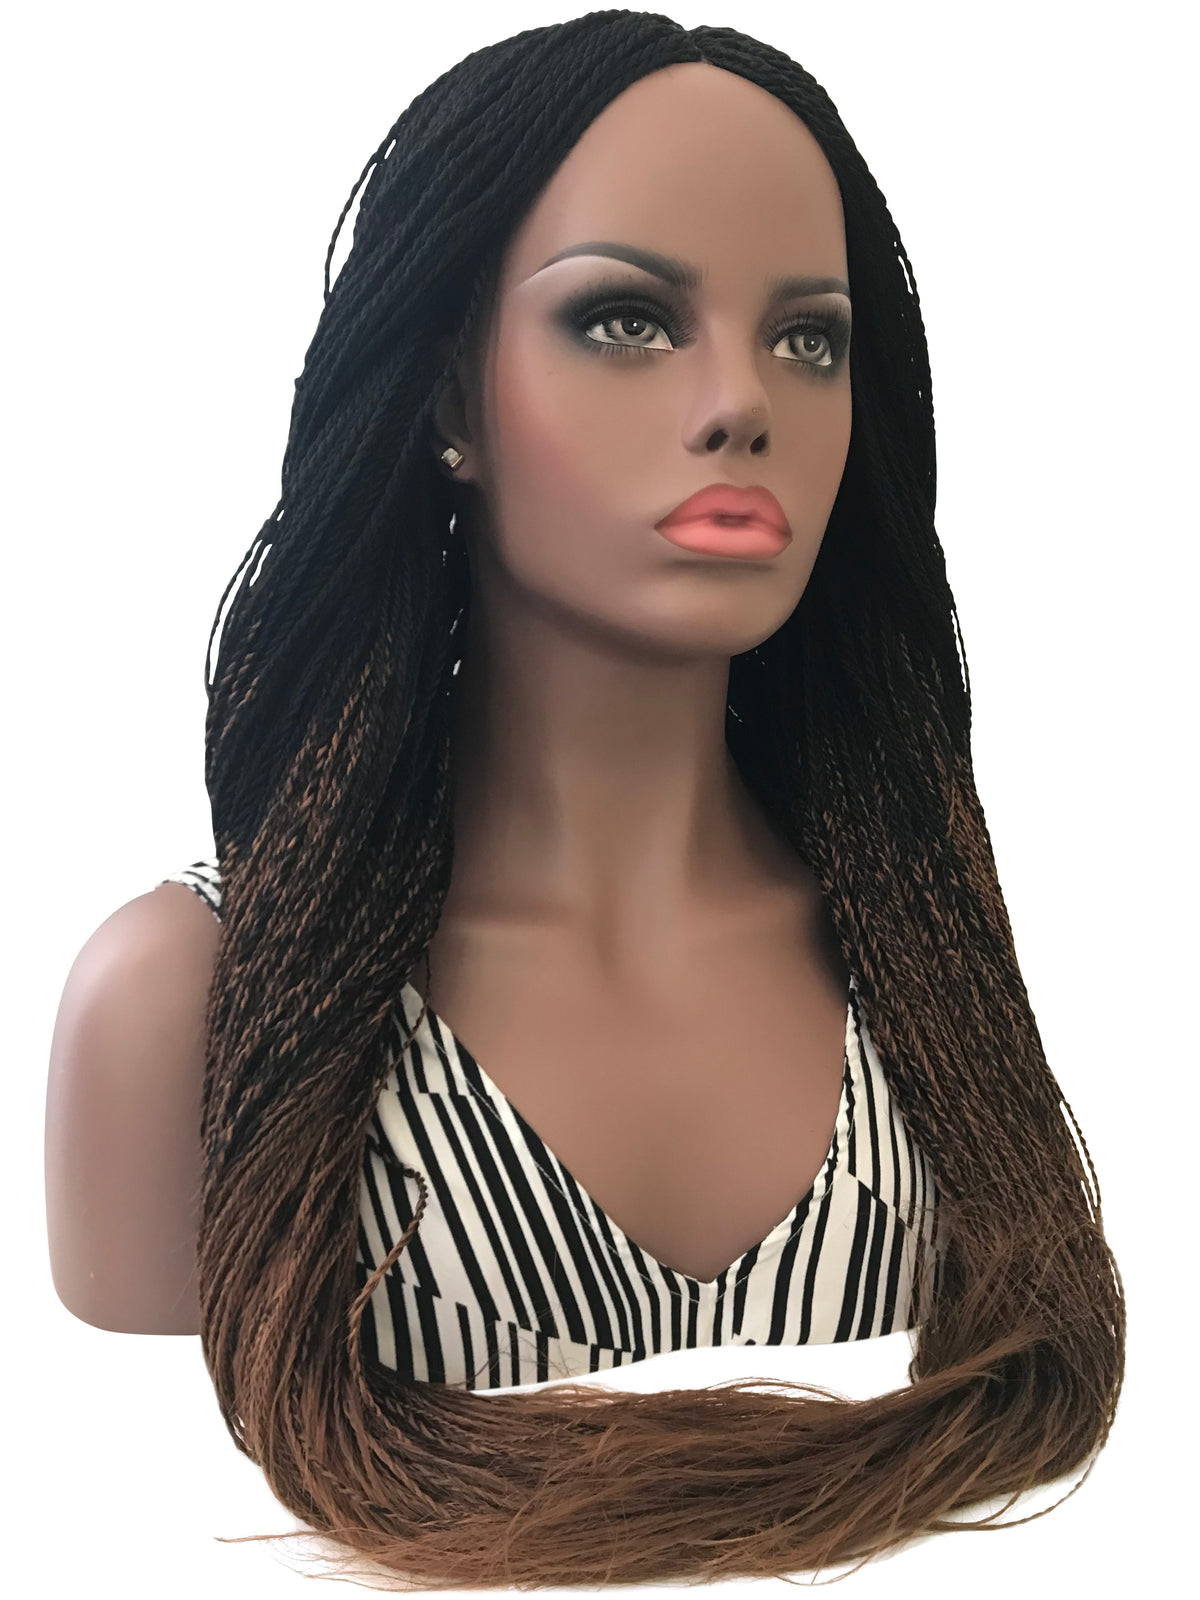 Handmade Braided Wigs Senegalese Twist - Ombre 22 Inches